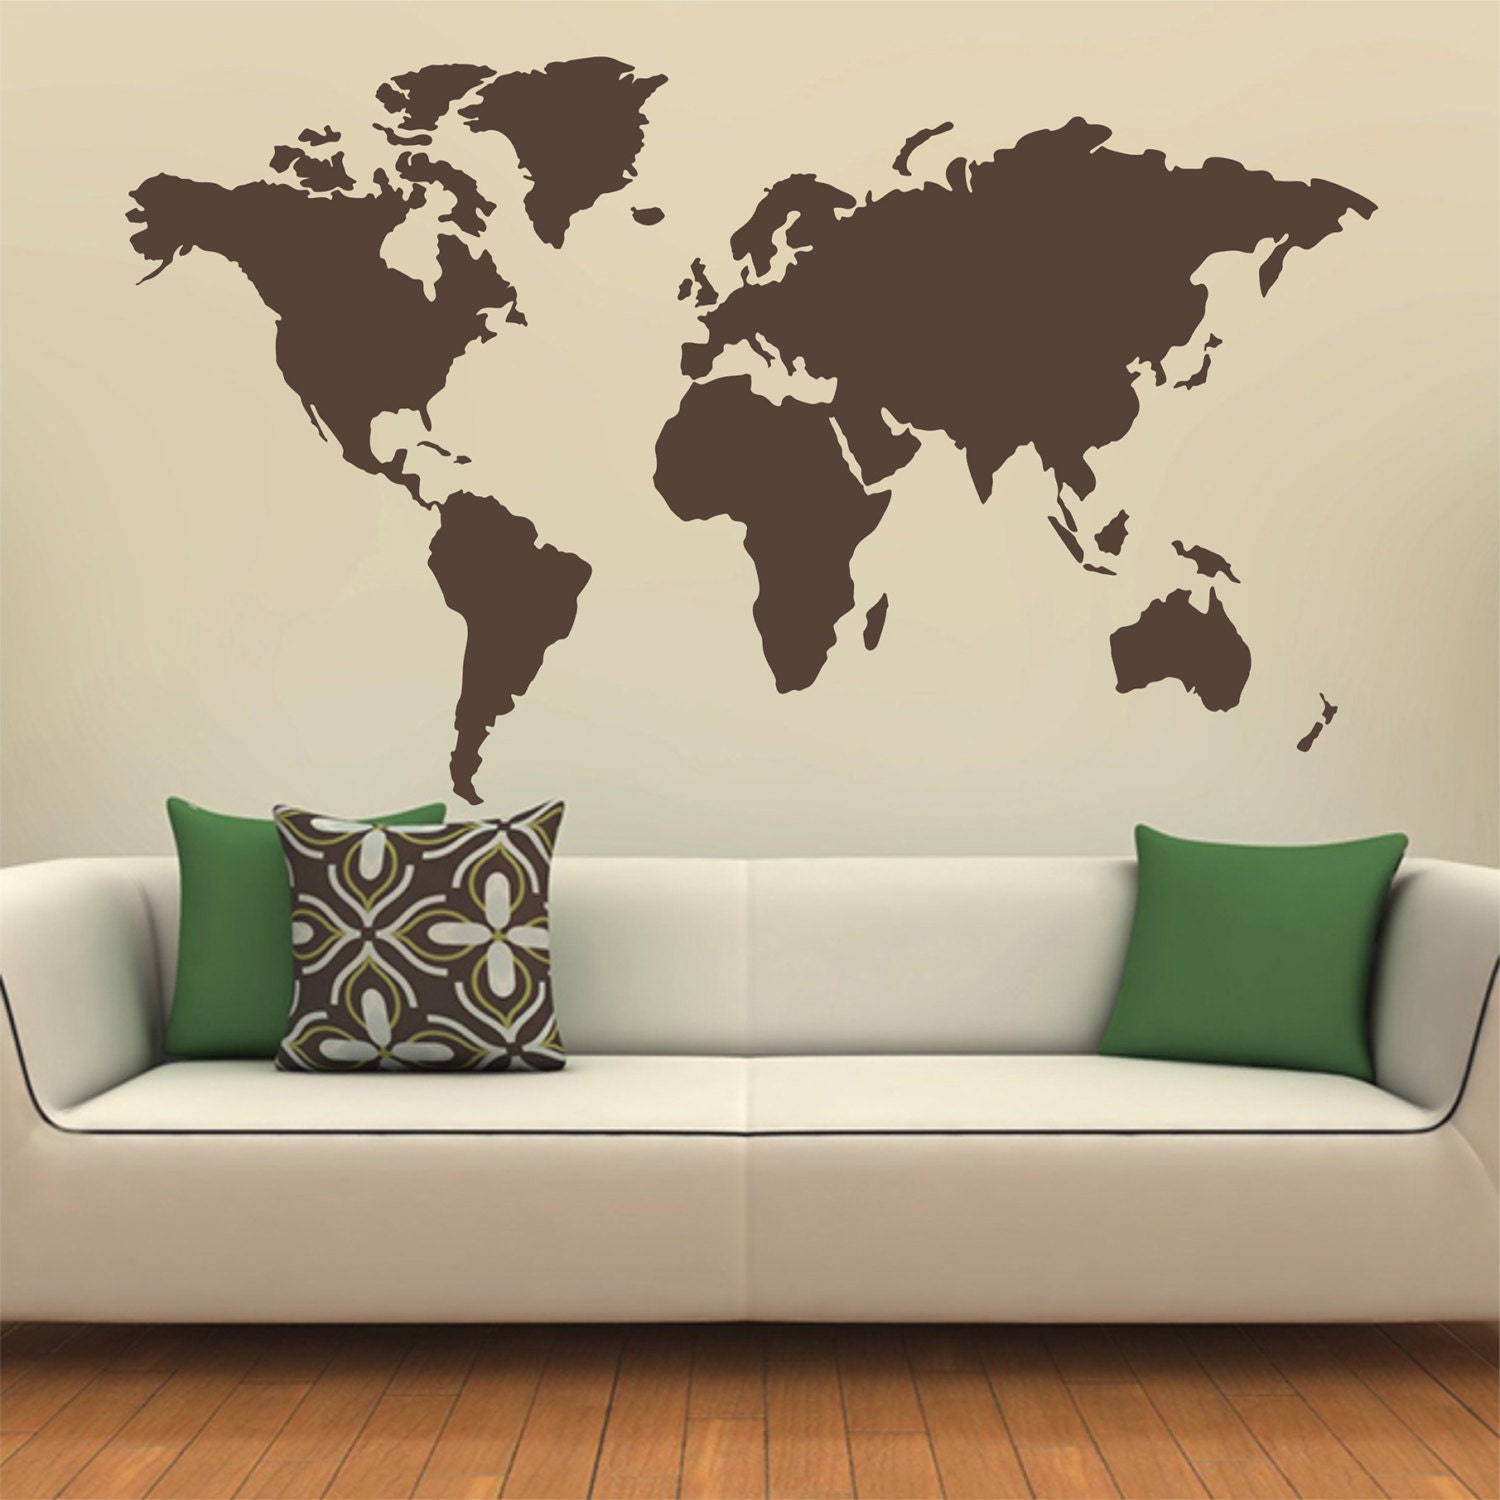 world map wall stickers vinyl art decals e wall decal world map wallpaper mural for kids room